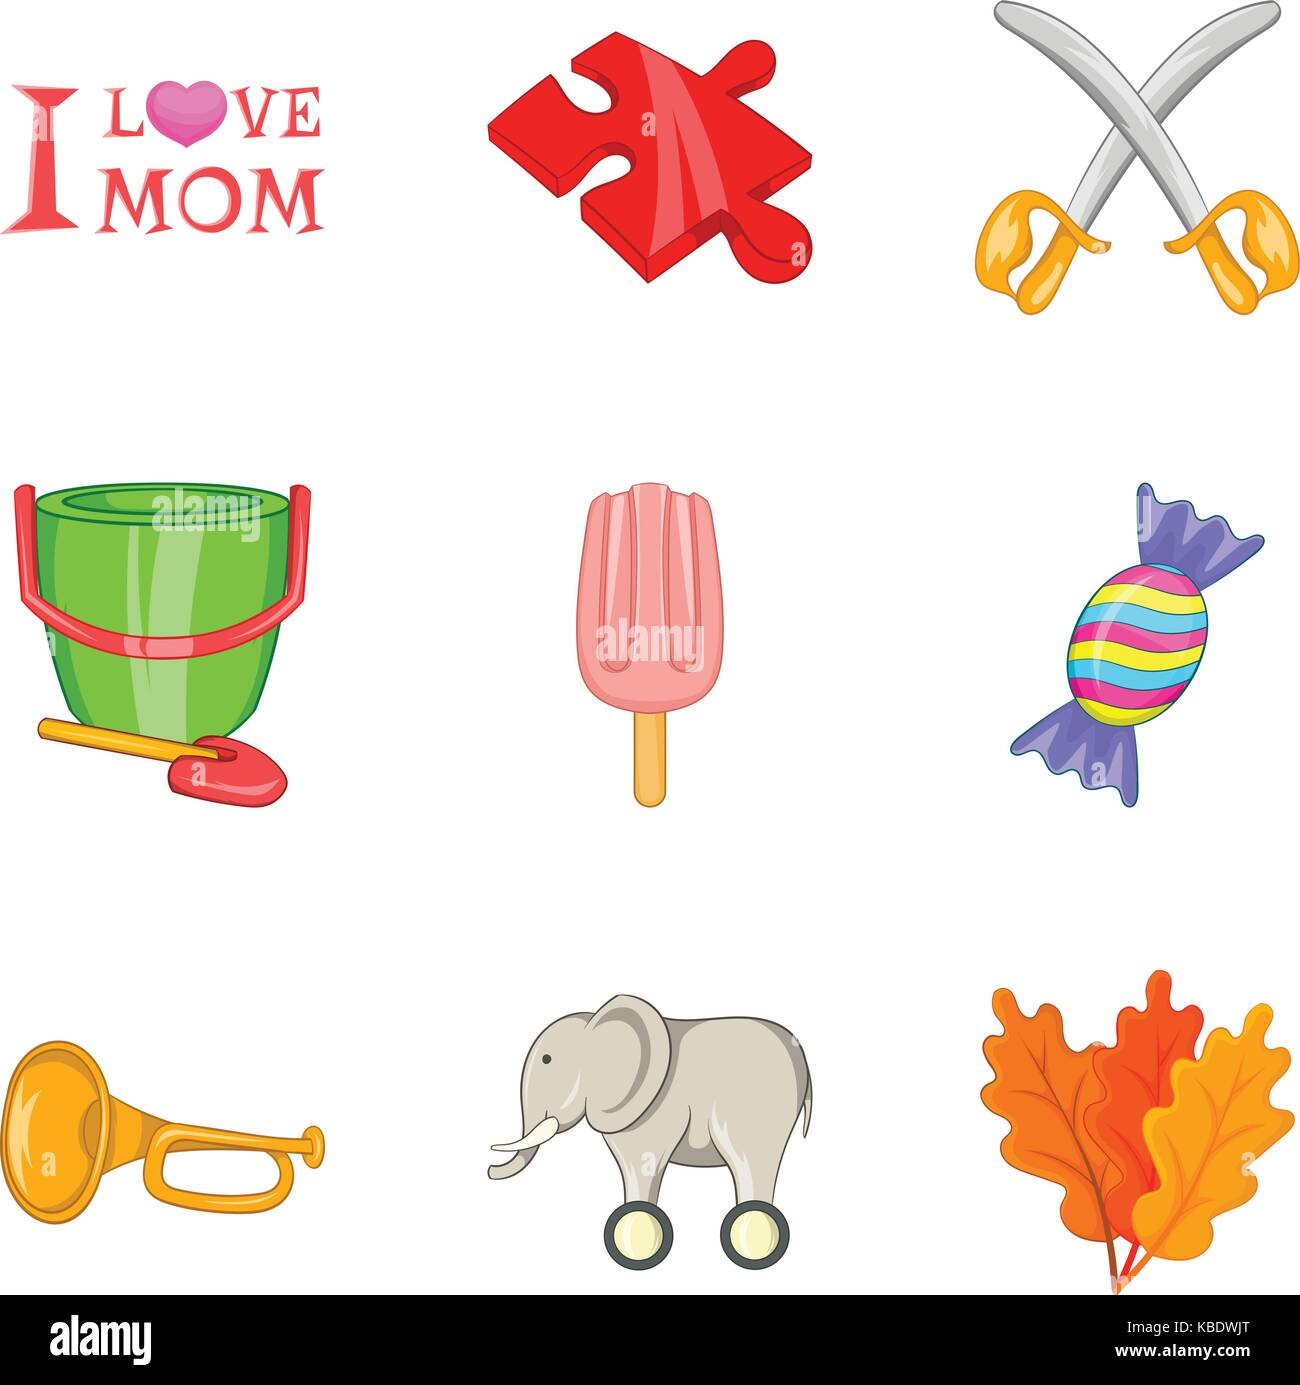 Mothers love icons set, cartoon style - Stock Image